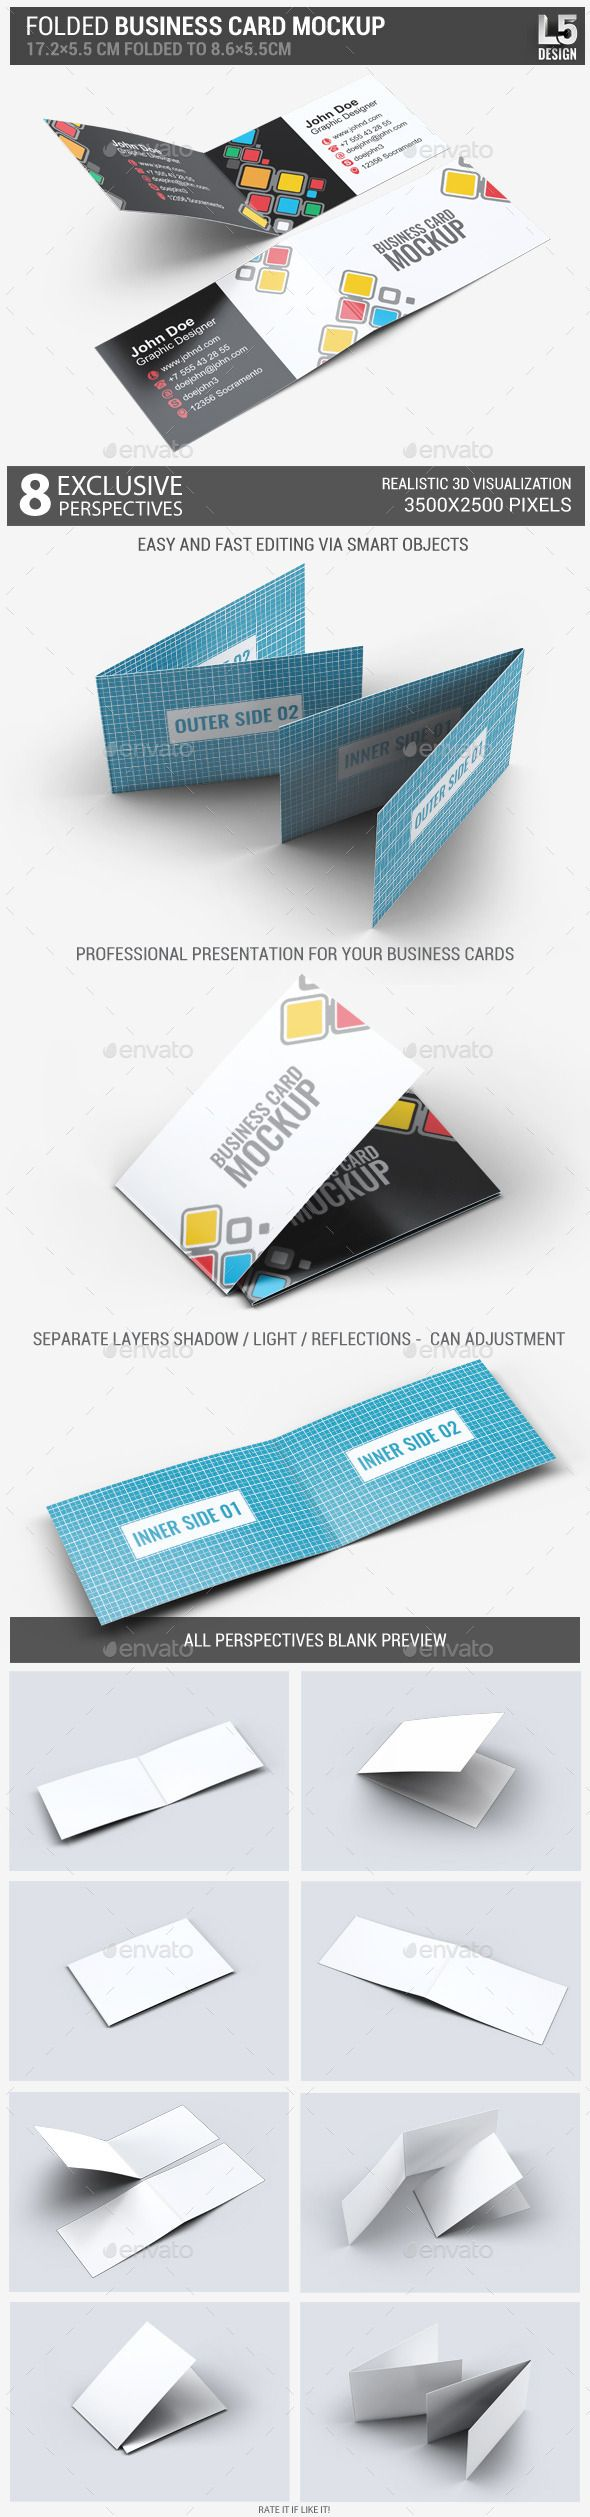 Folded Business Card Mock-Up | Folded business cards, Mockup and ...